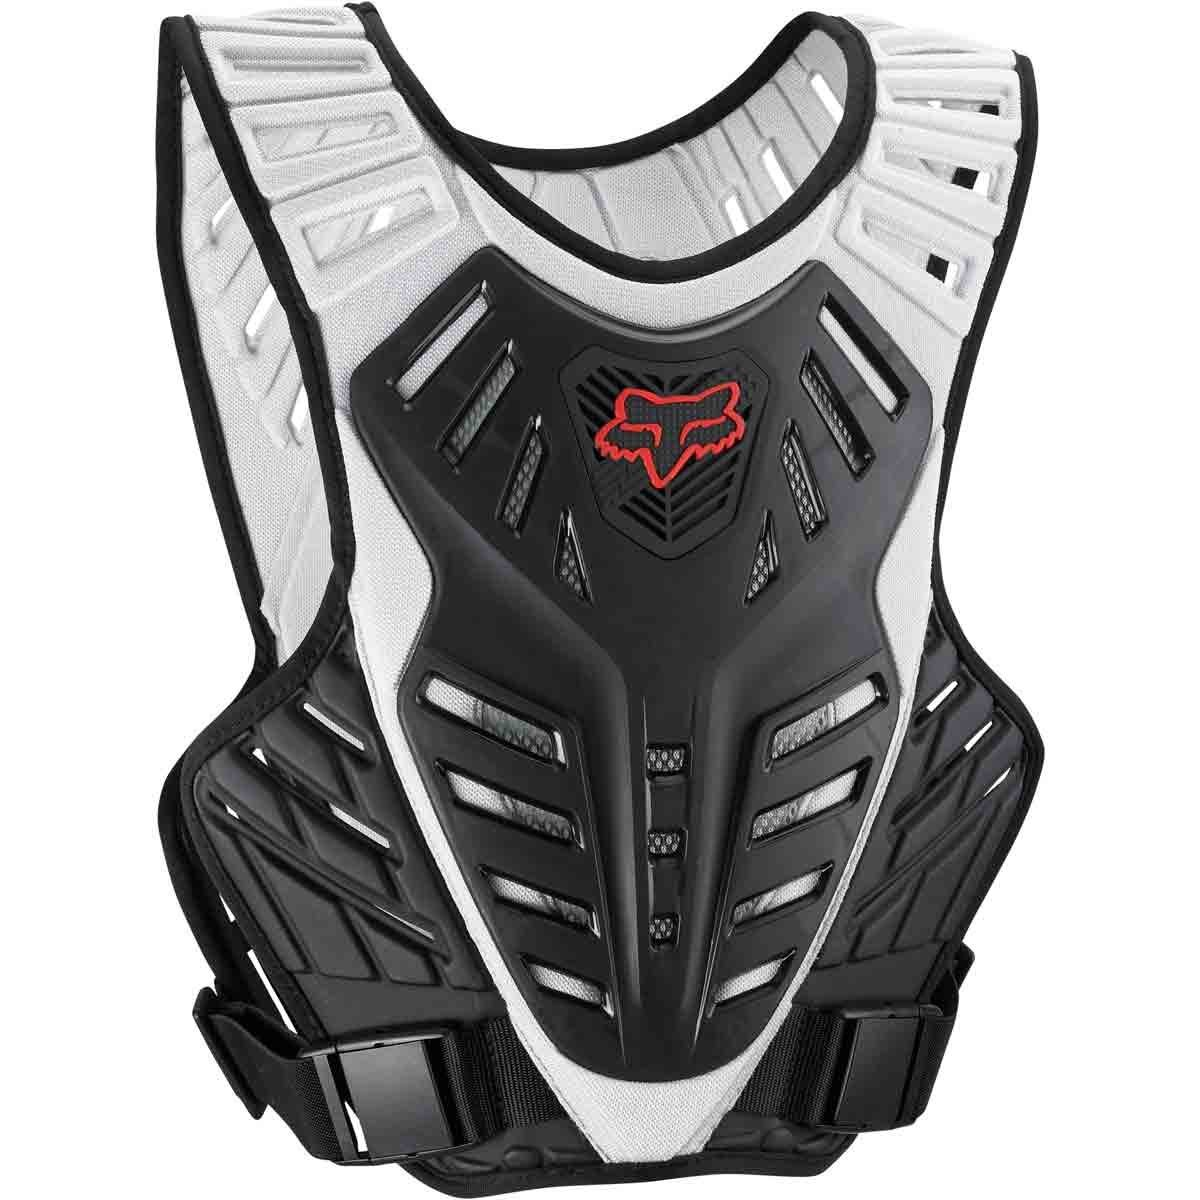 Fox Racing Titan Race Subframe Men's Roost Deflector Motocross Motorcycle Body Armor - Black/Silver/Small/Medium